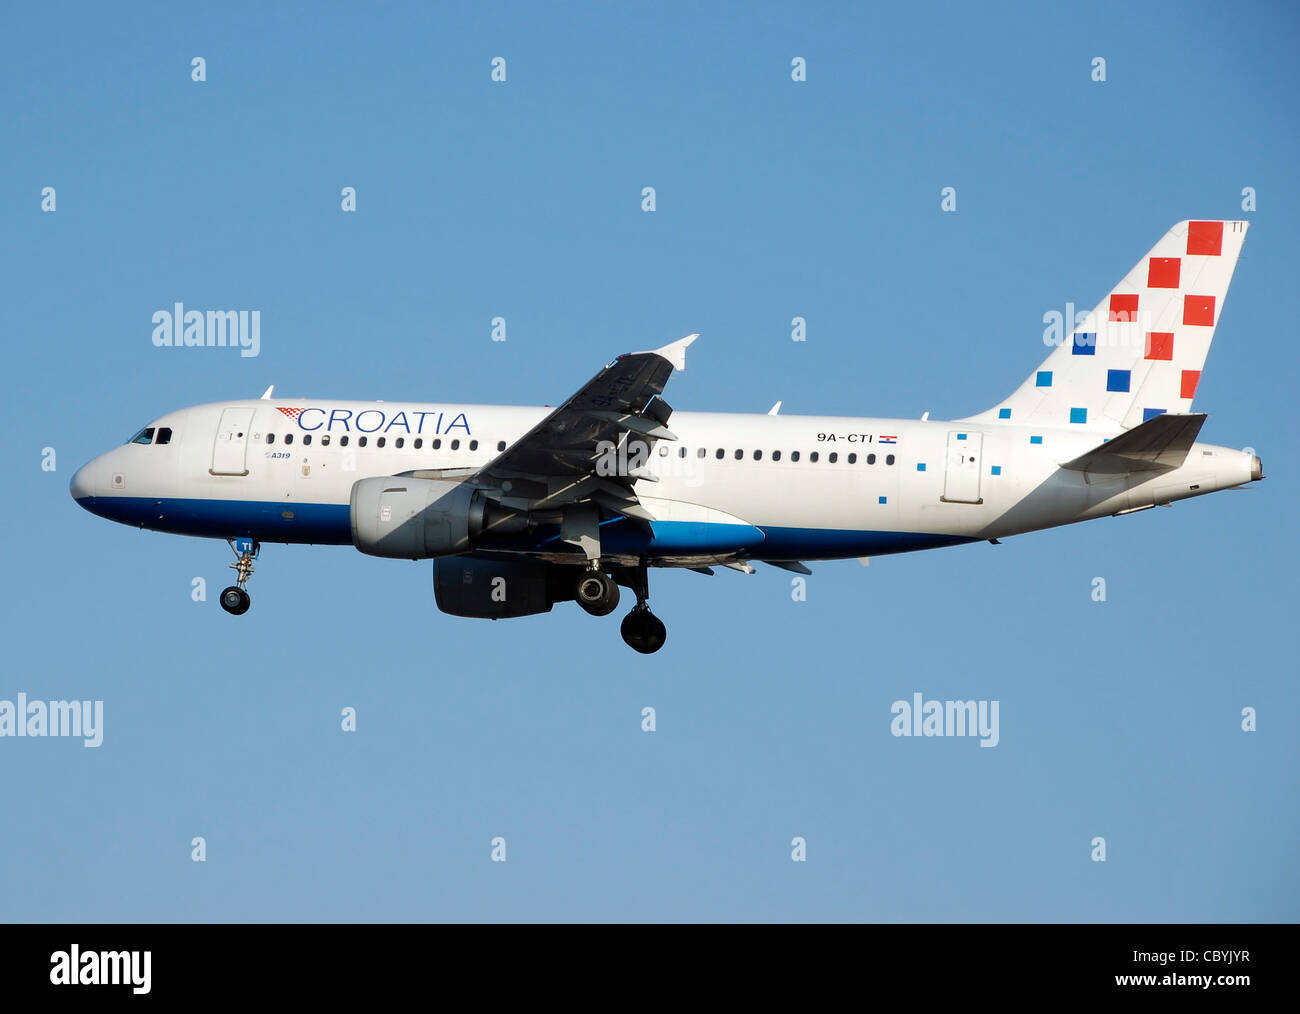 Croatia Airlines Airbus A319-100 (9A-CTI) landing at London Heathrow Airport, England. - Stock Image